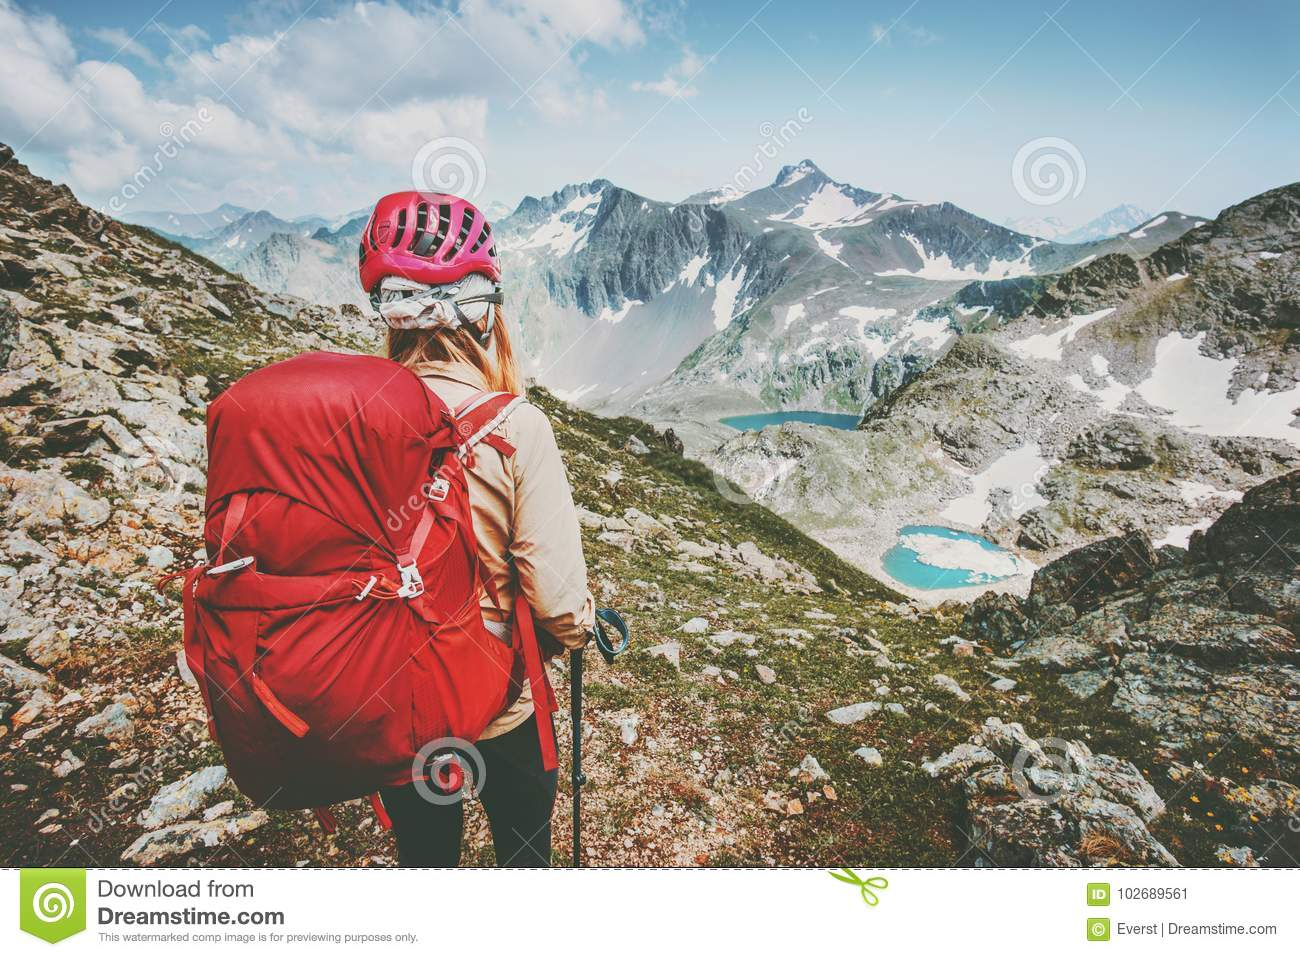 Adventurer tourist hiking in mountains with backpack Travel Lifestyle hiking adventure concept summer vacations outdoor exploring